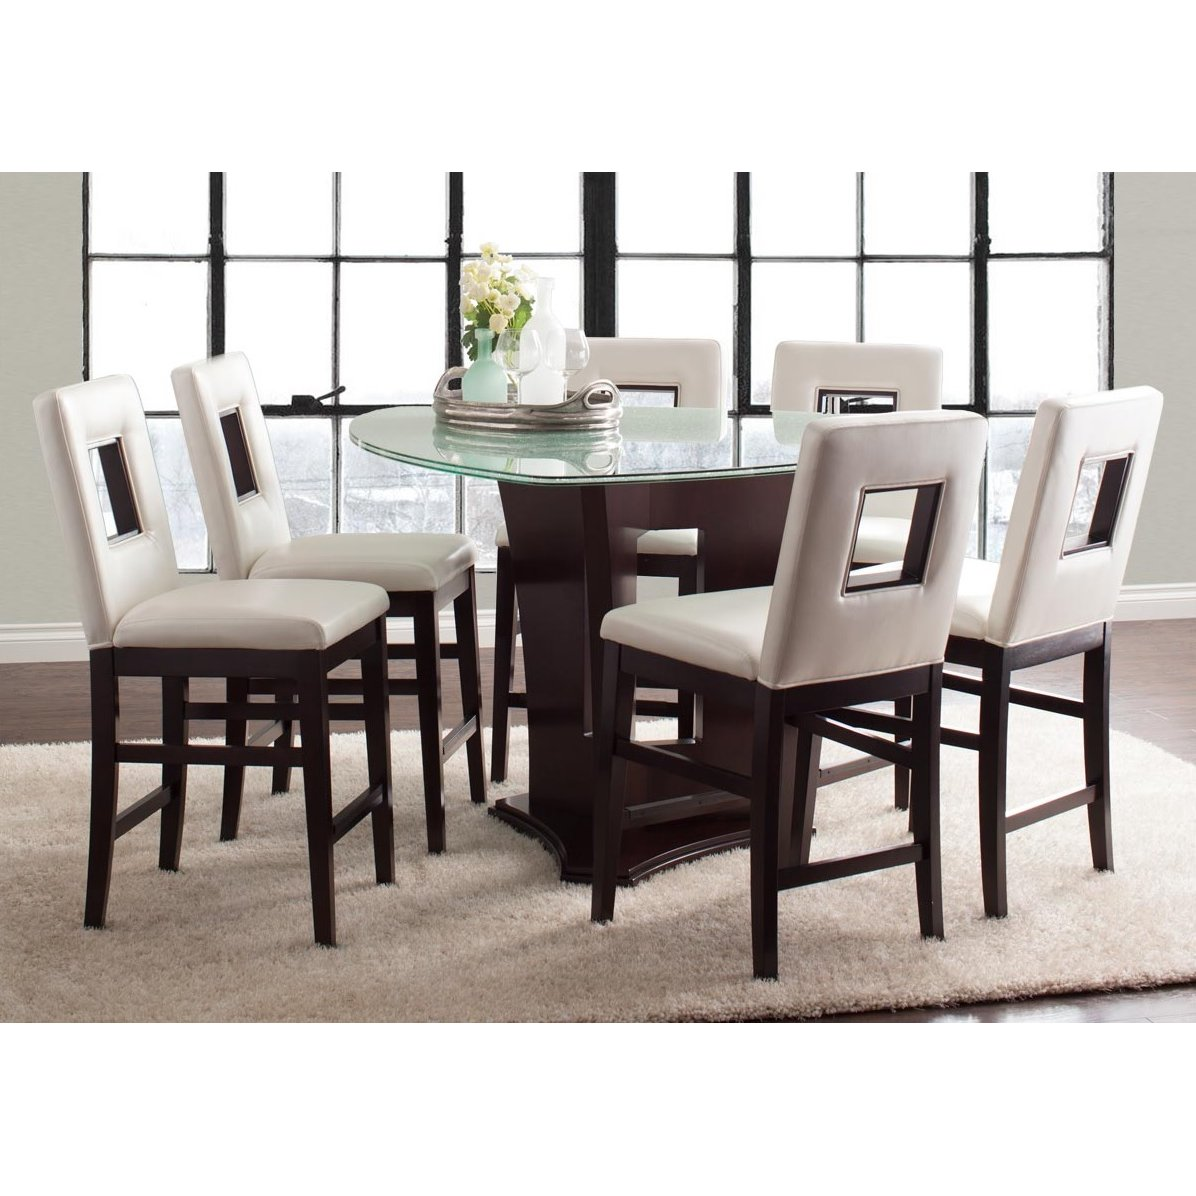 Soho Espresso 7 Piece Counter Height Dining Set | RC Willey Furniture Store